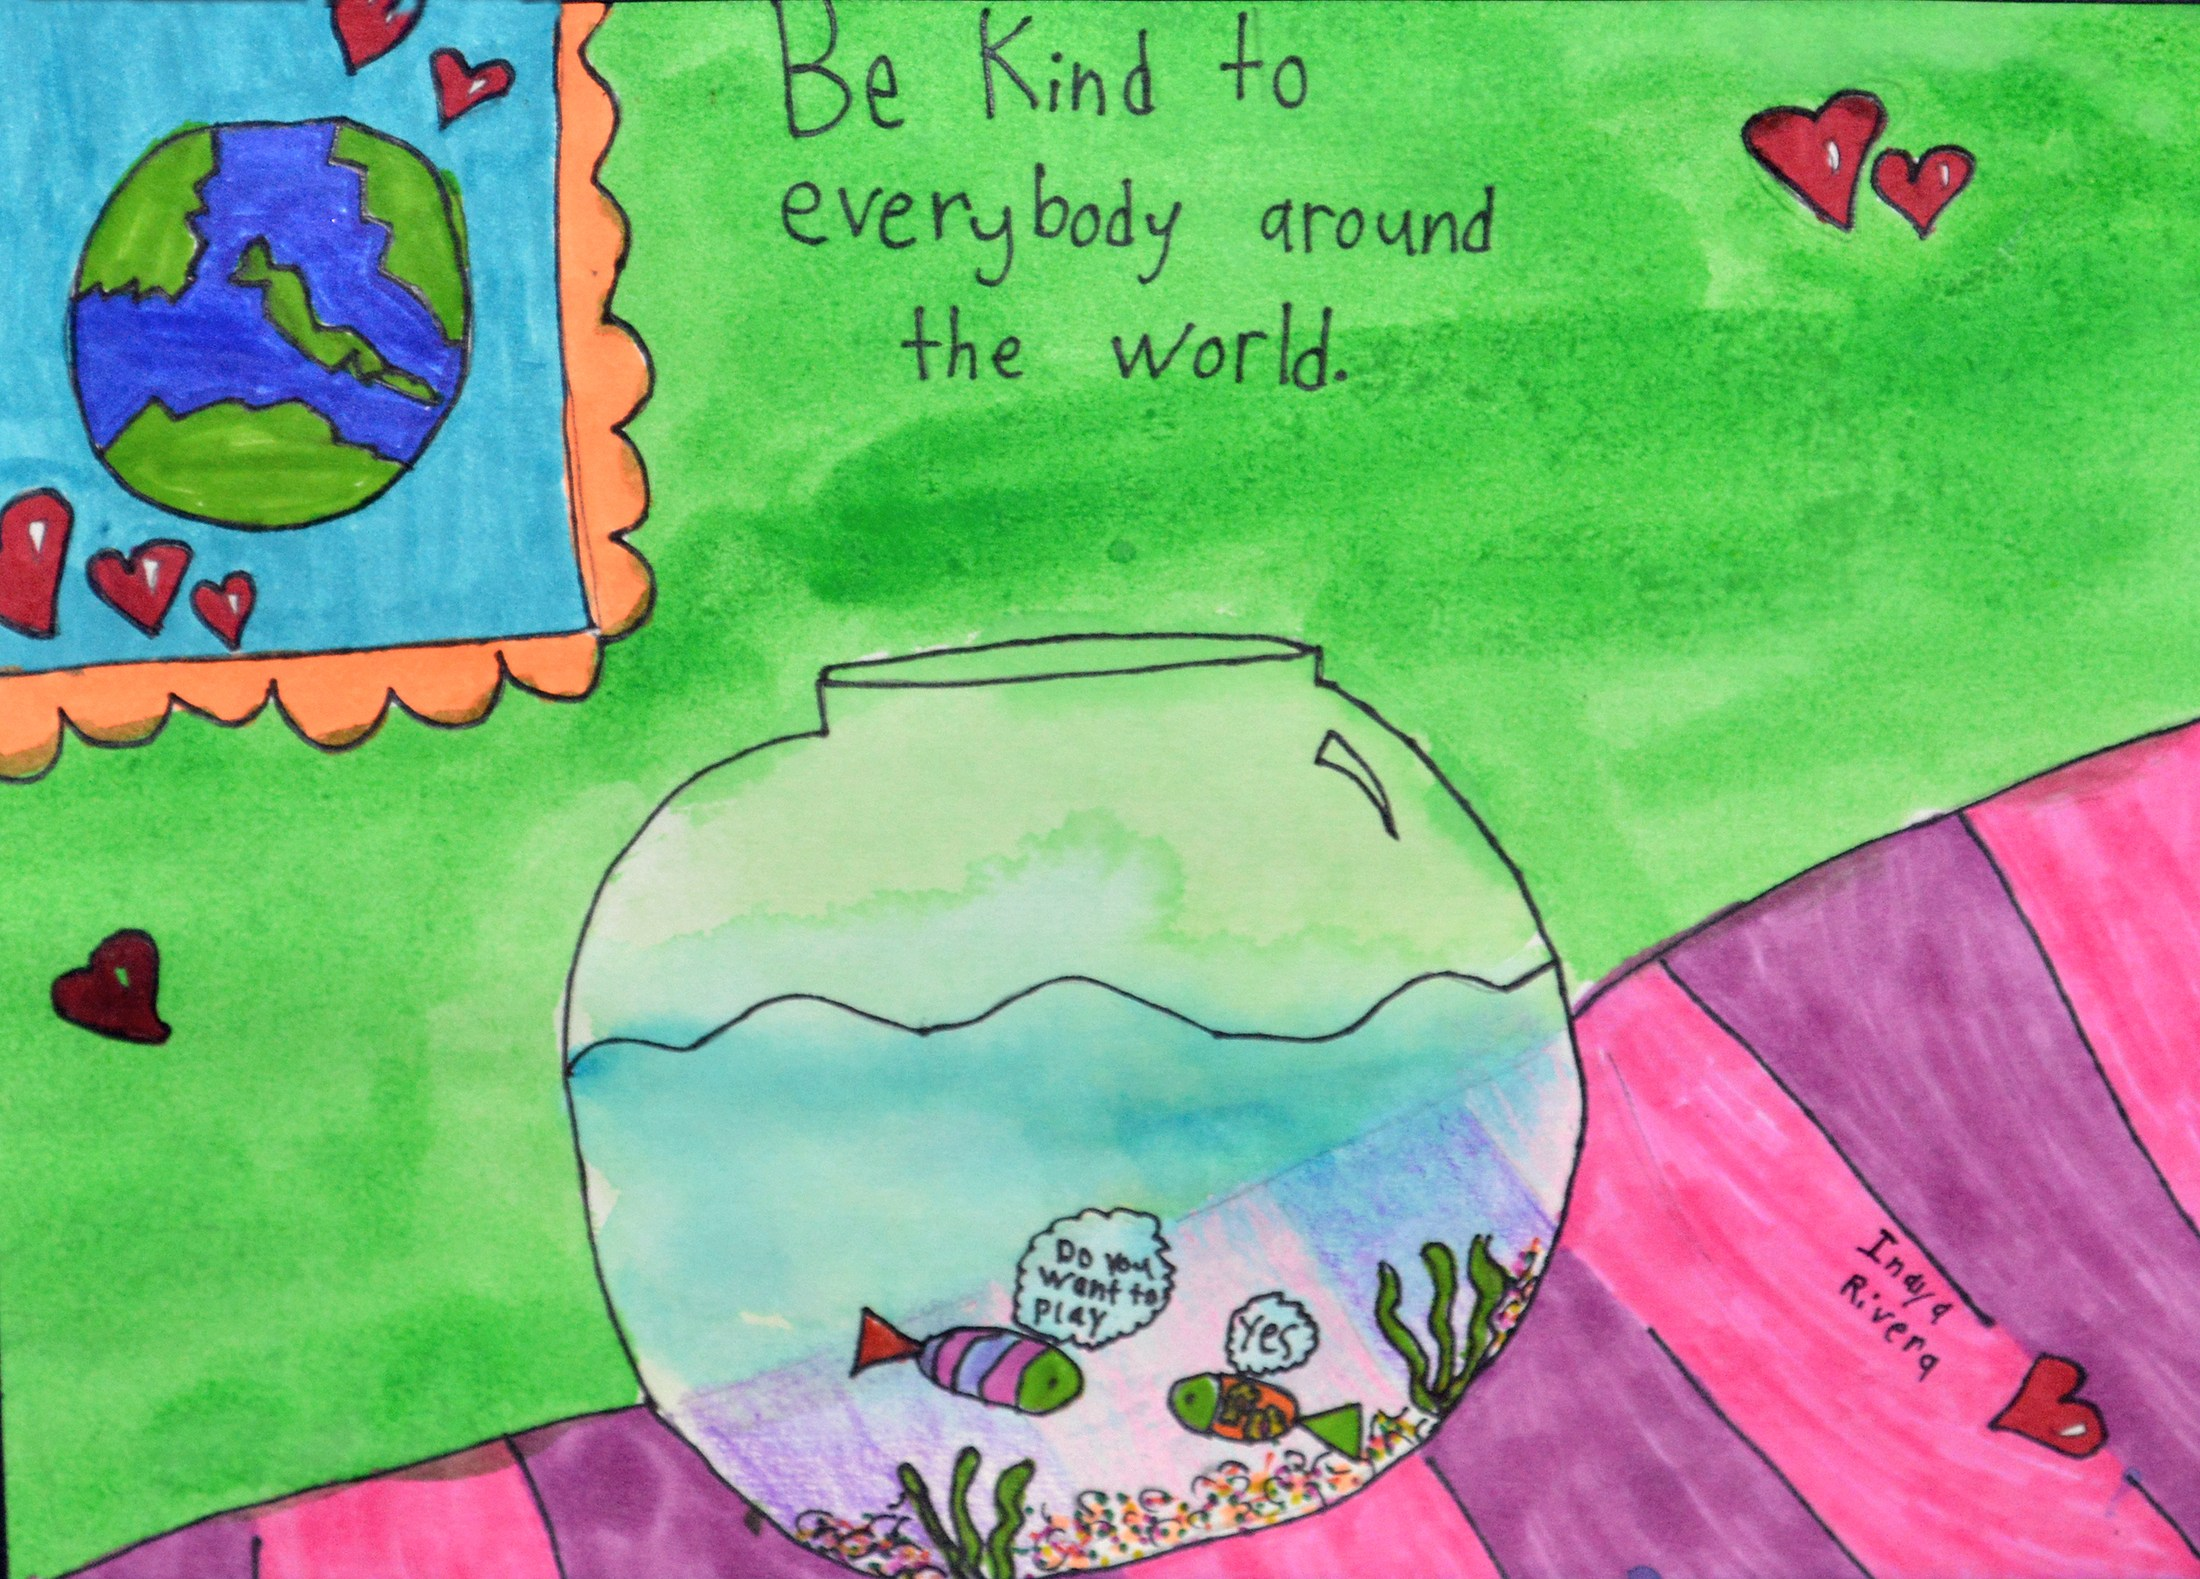 Mission and Vision - Be kind to everybody around the world